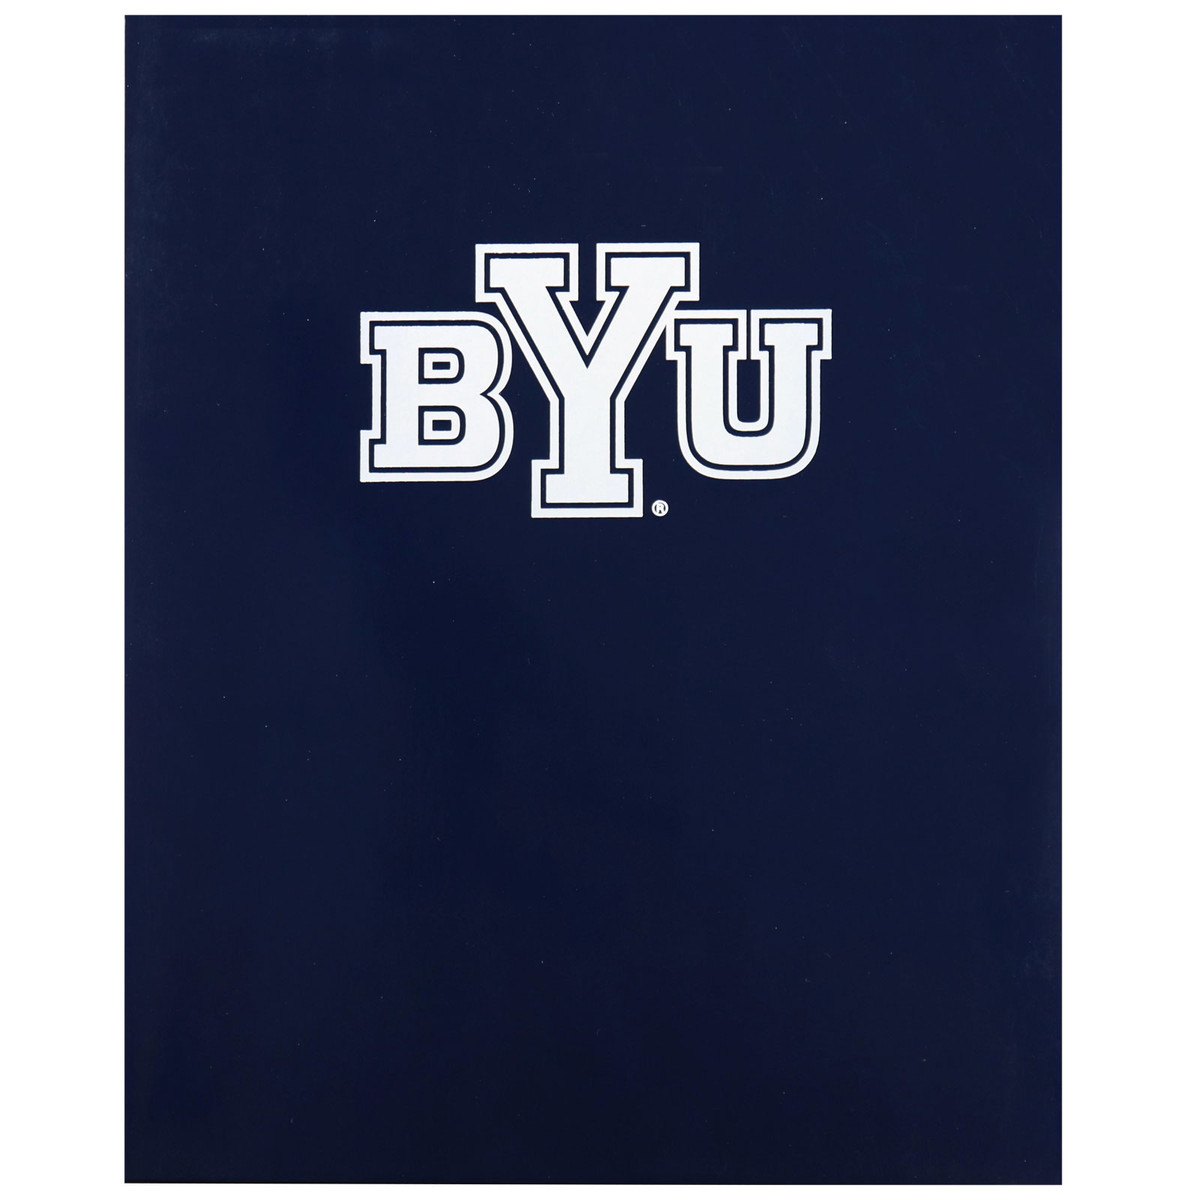 byu portfolio 1 Byuedu is tracked by us since april, 2011 over the time it has been ranked as high as 4 181 in the world, while most of its traffic comes from usa, where it reached as high as 1 011 position.